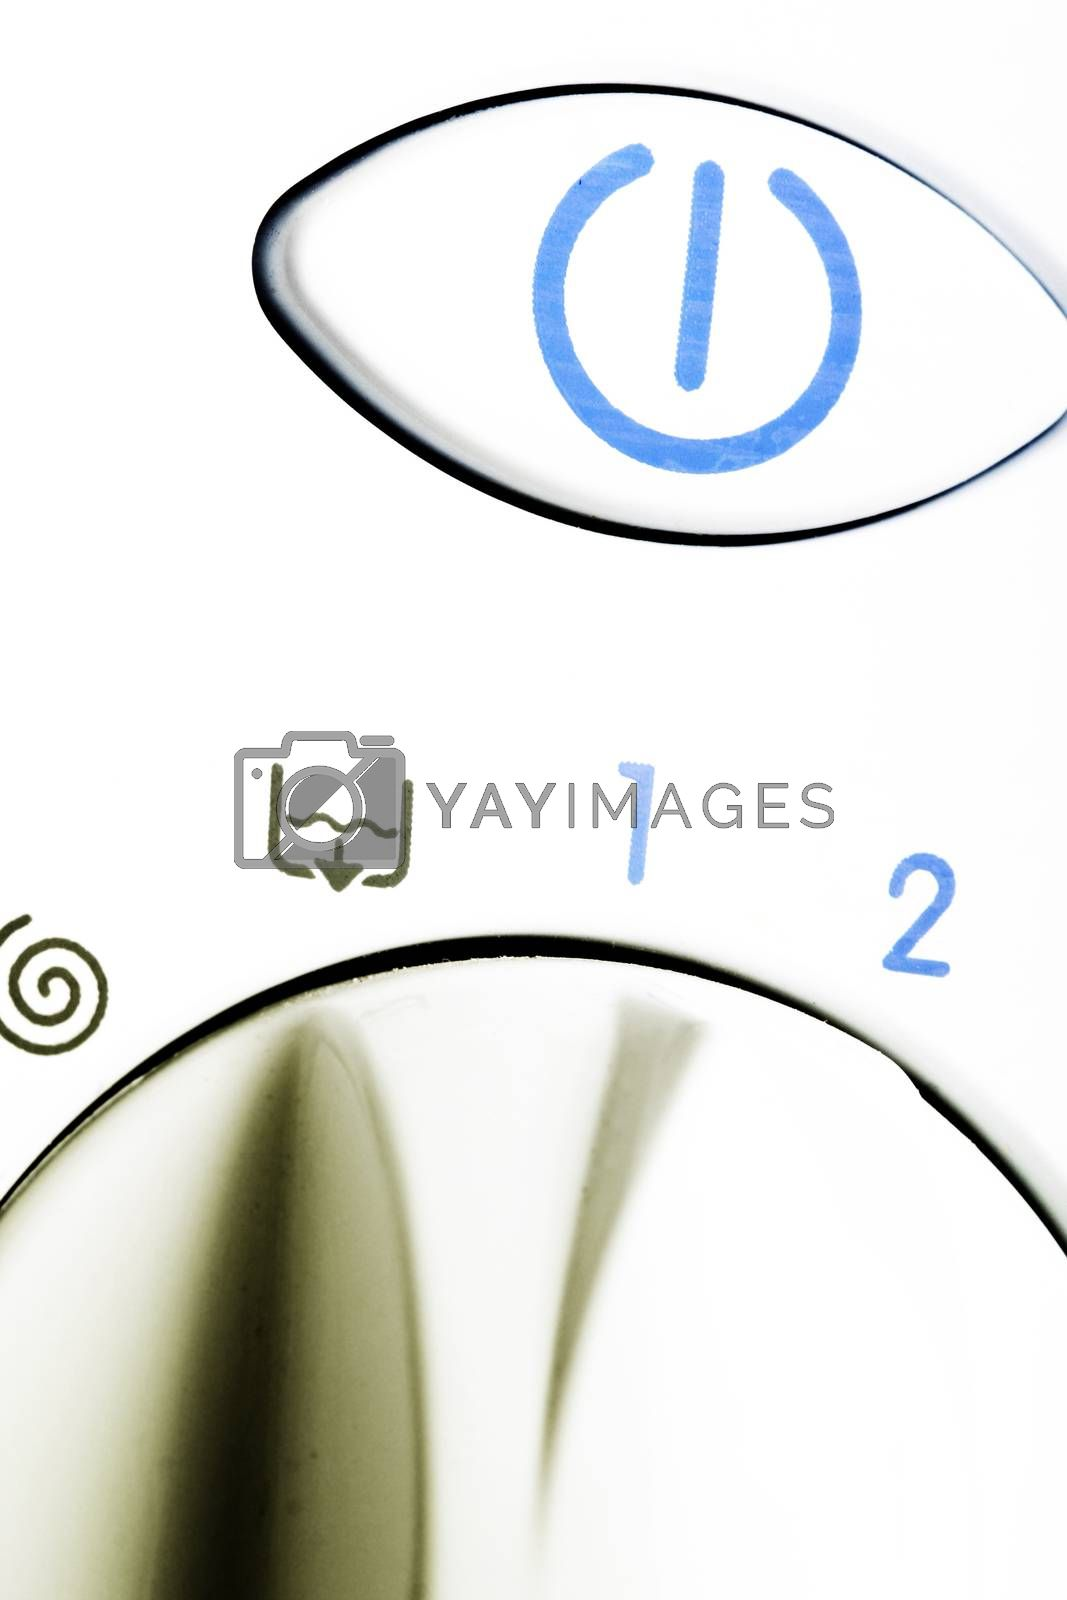 Royalty free image of Wheel of a laundry. by arosoft